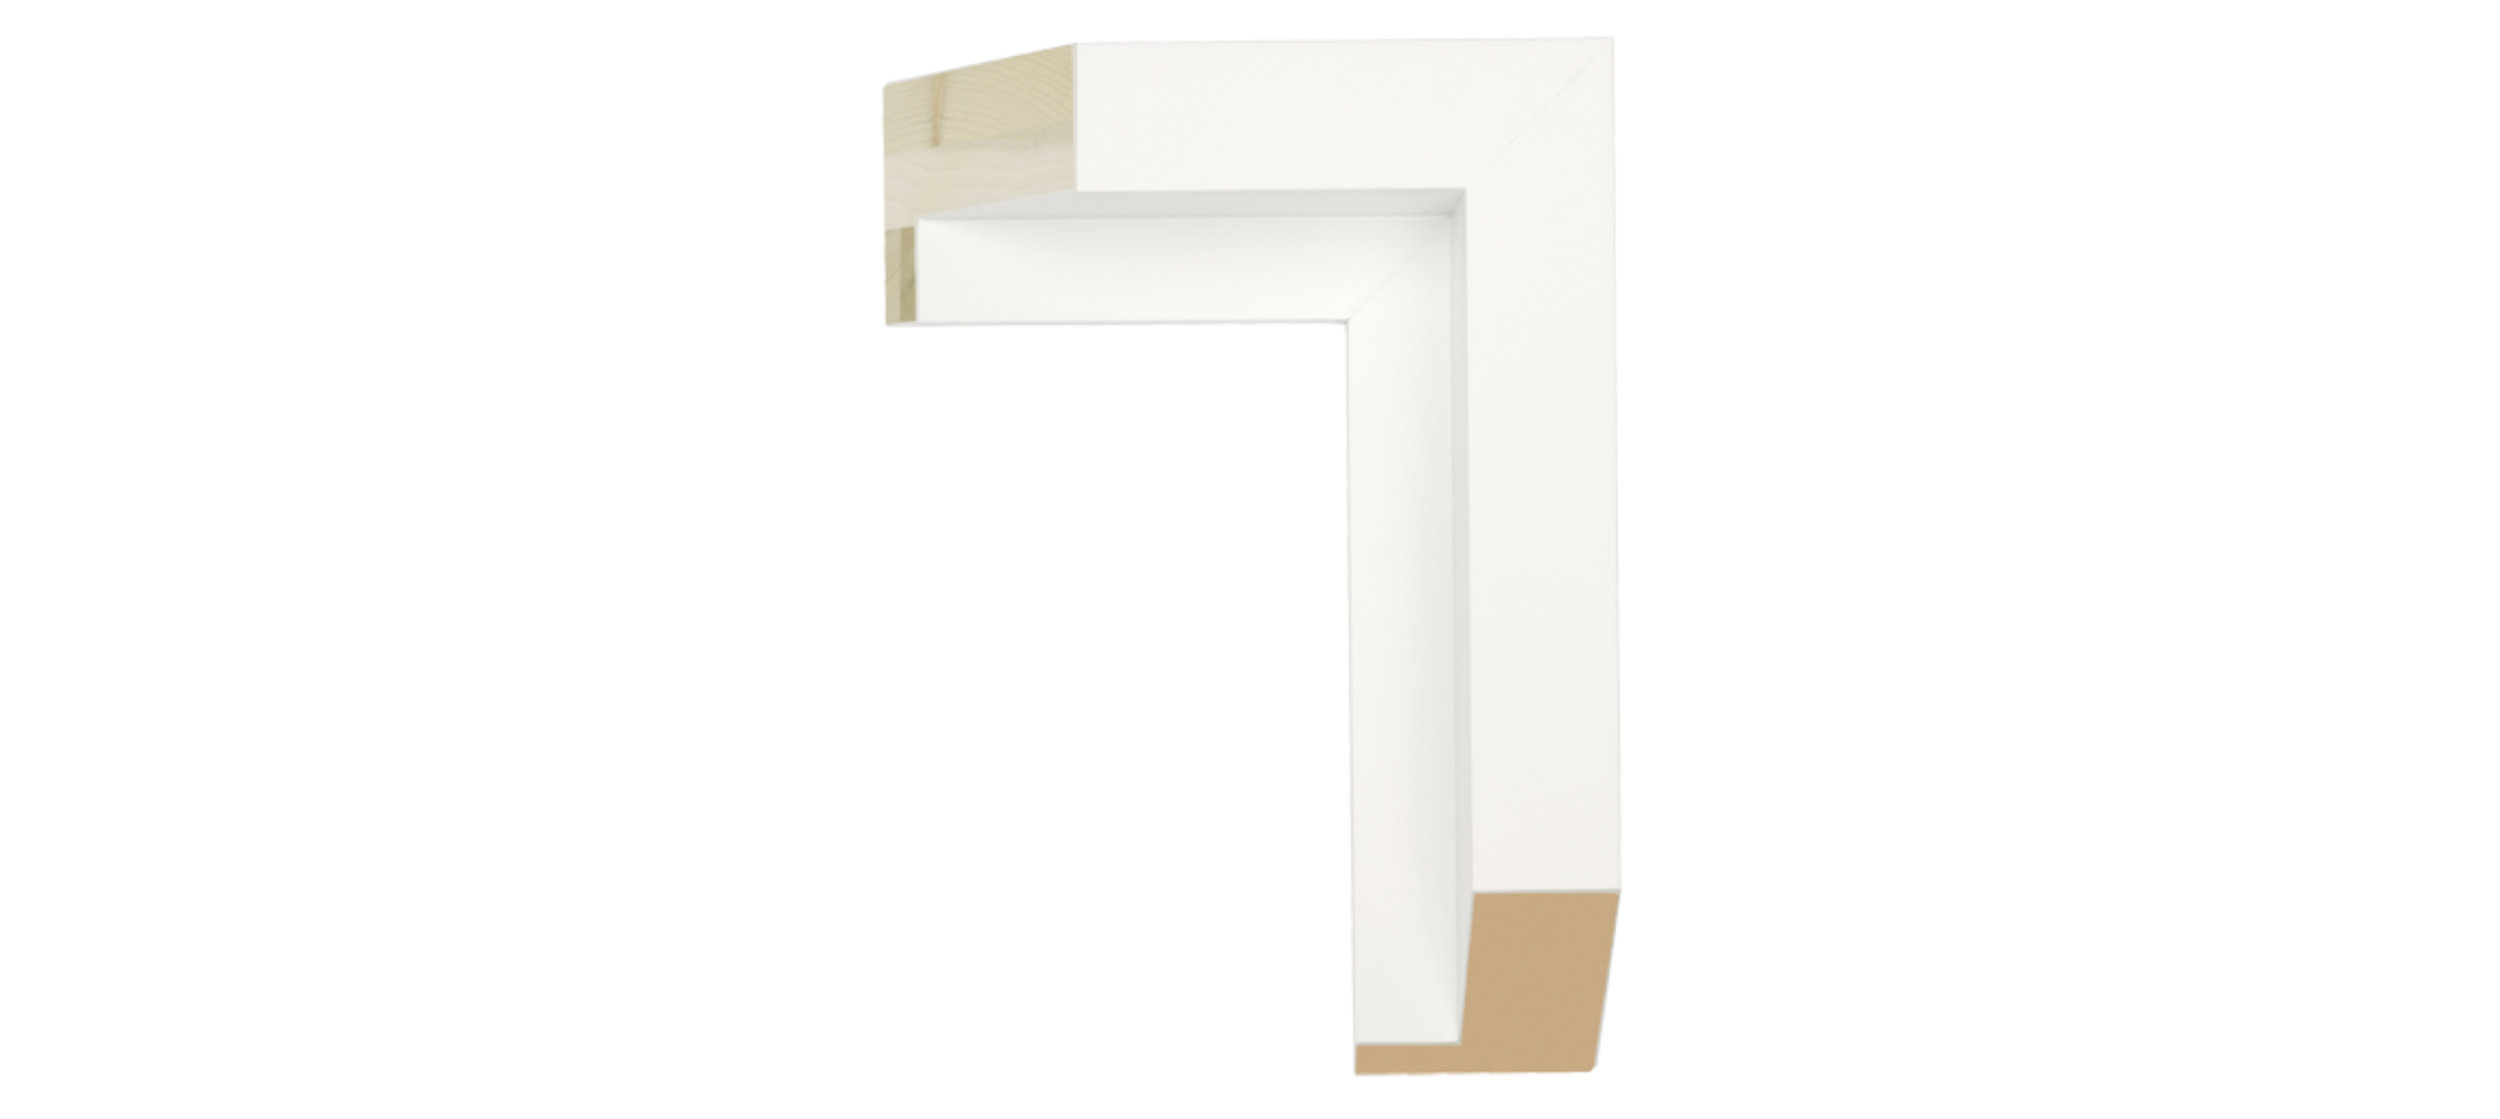 White Wood 2 Float Frame